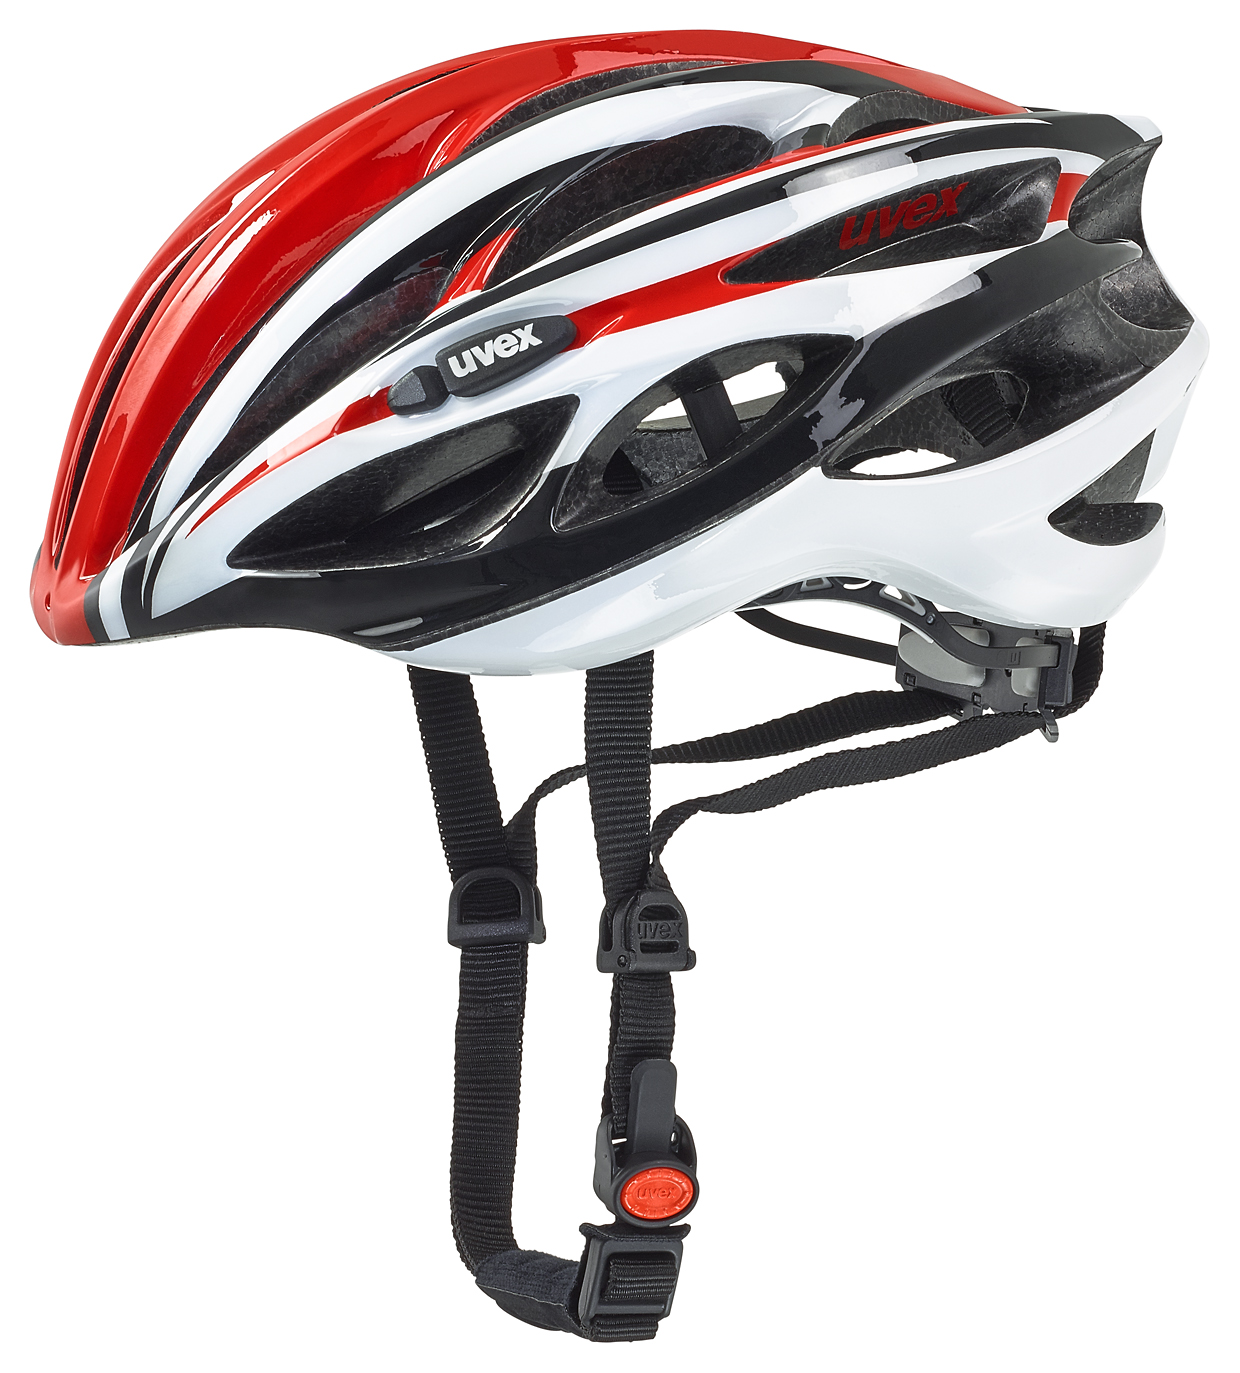 UVEX RACE 1, RED-WHITE 2016 50-55 cm